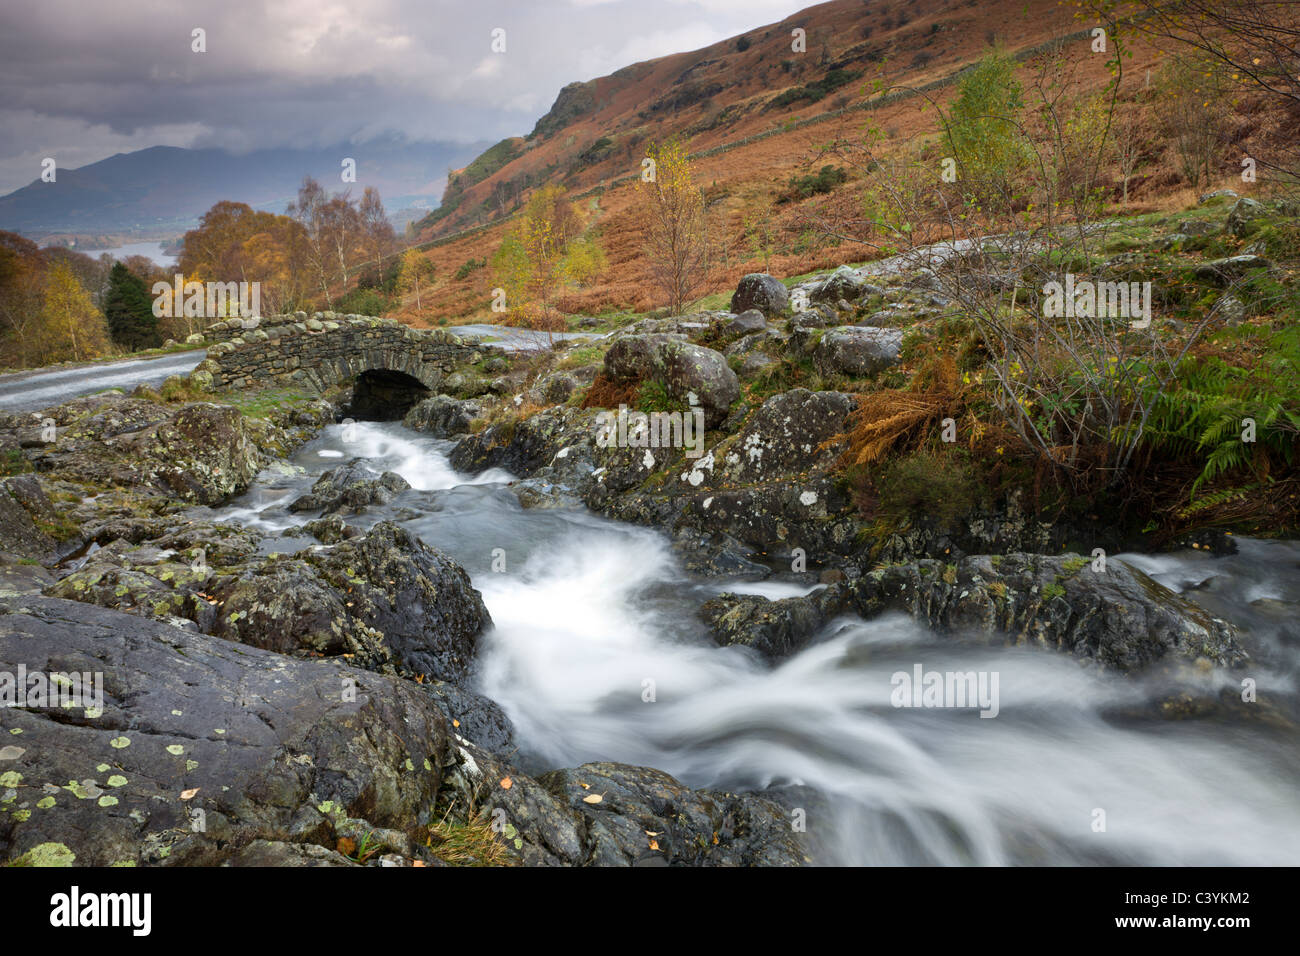 Barrow Beck fließt unterhalb der malerischen Ashness Brücke, Nationalpark Lake District, Cumbria, England. Stockbild